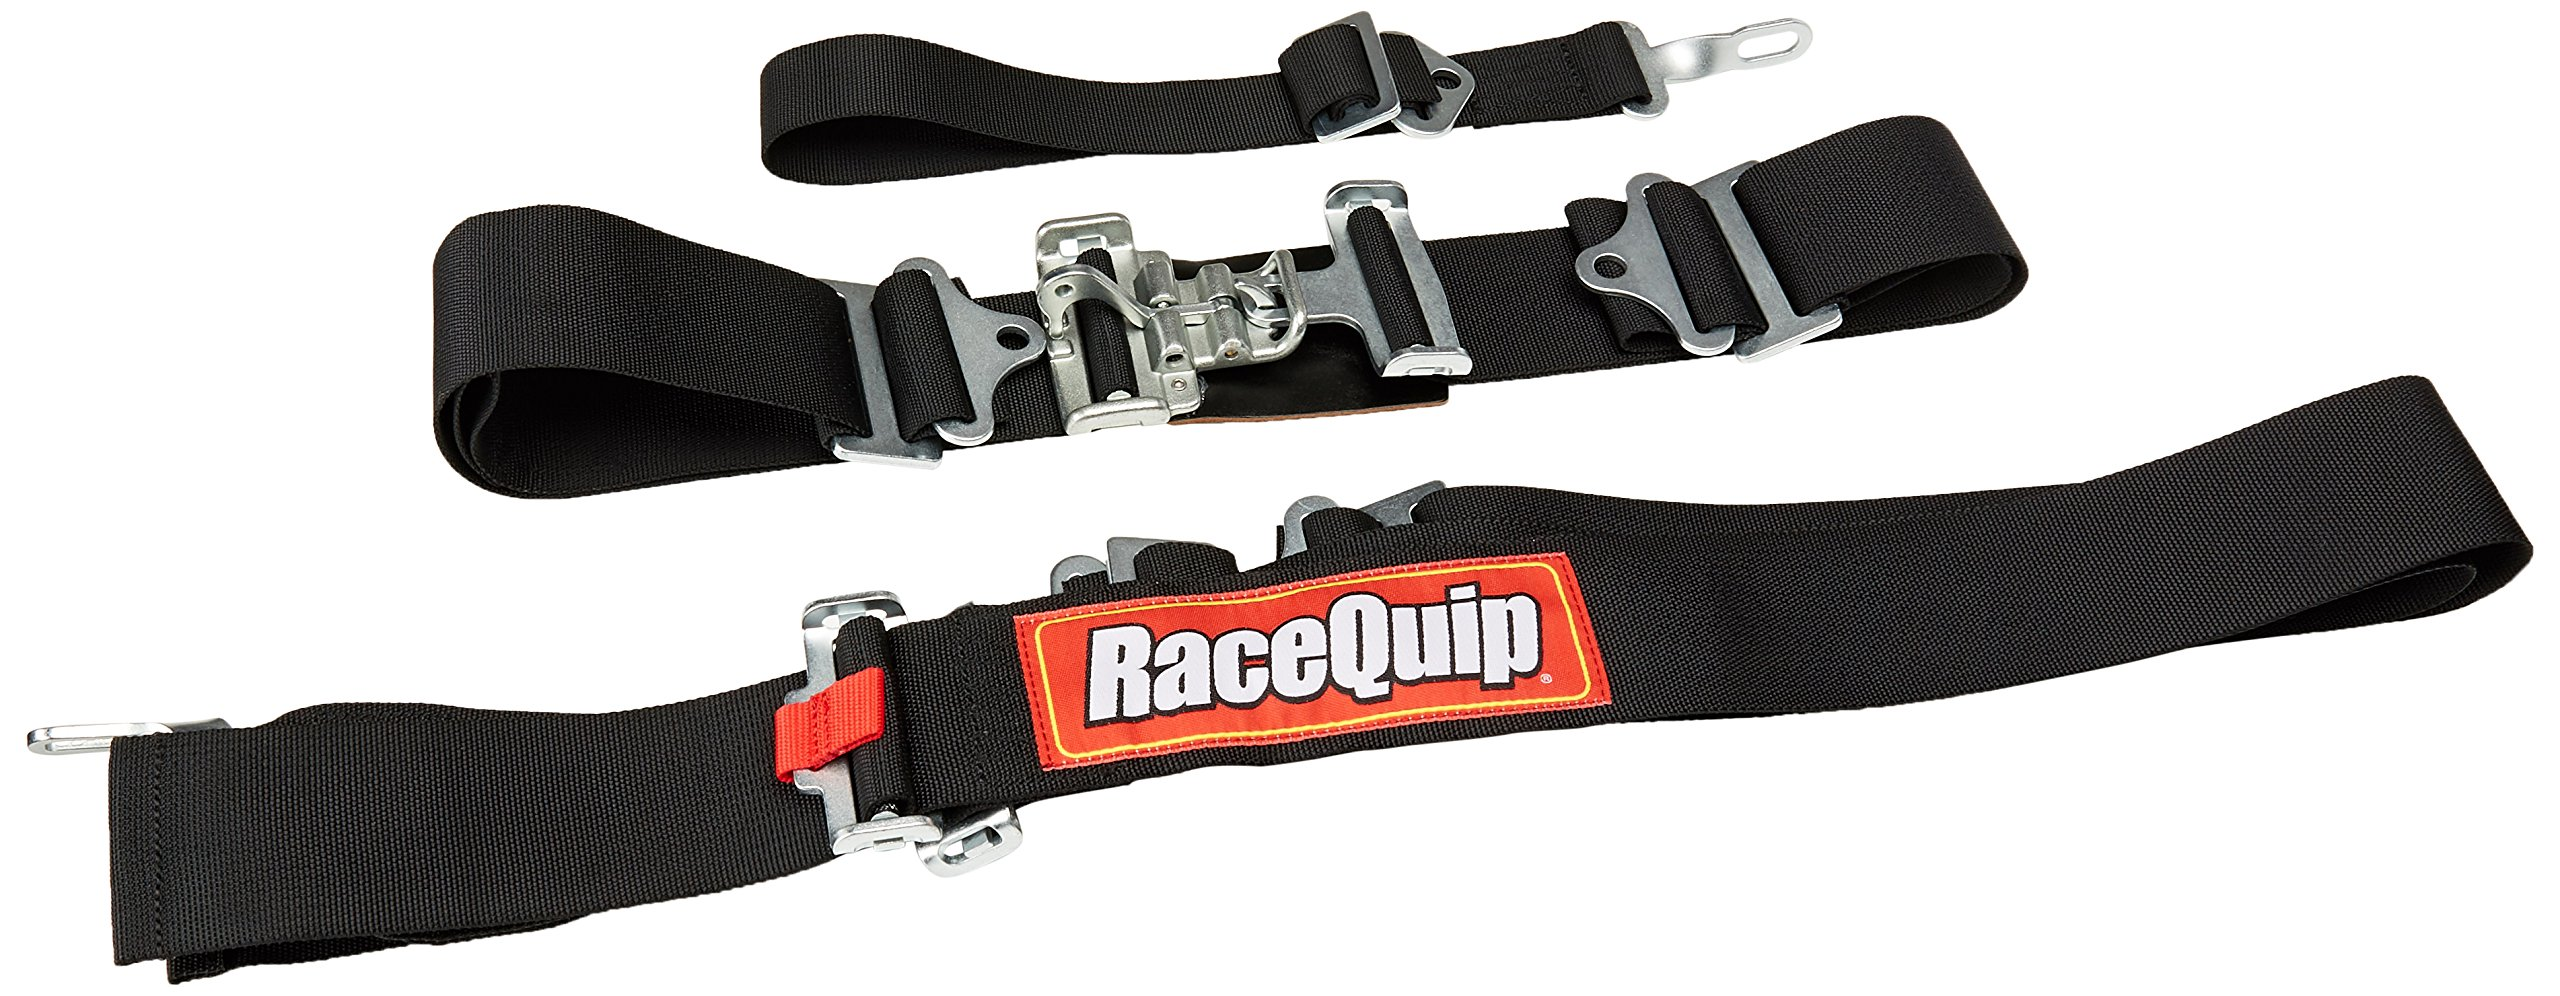 RaceQuip 711001 Black SFI 16.1 Latch and Link 5-Point Safety Harness Set with Individual Shoulder Belt by RaceQuip by RaceQuip (Image #1)